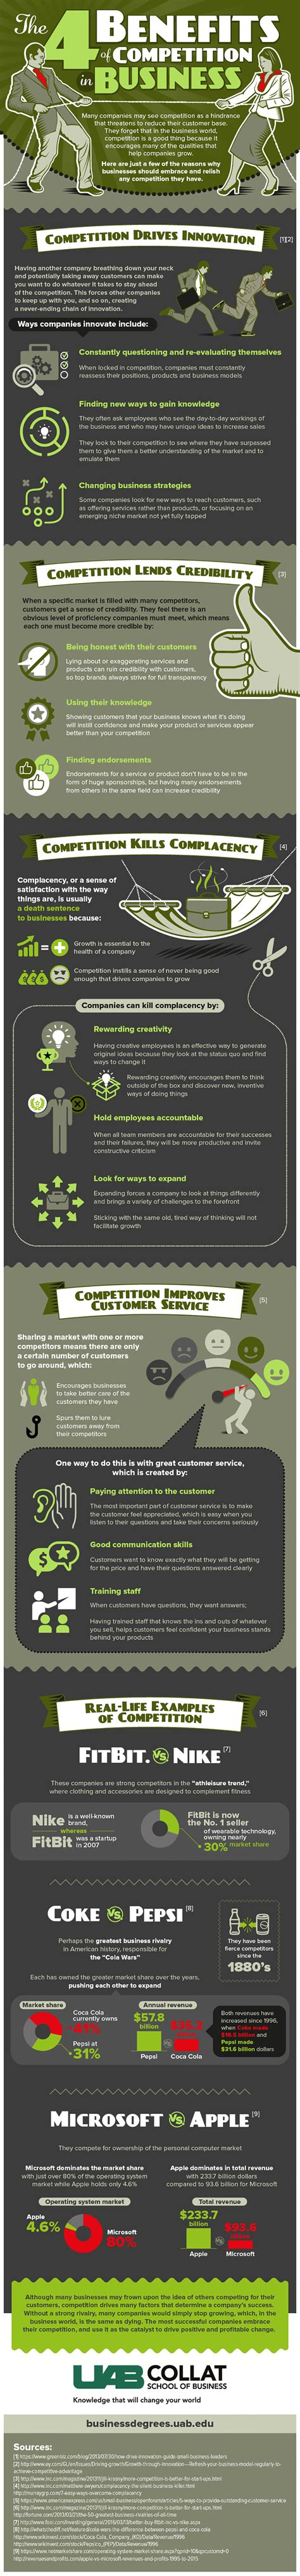 Benefits Of Mba Degree To A Company by Benefits Of Competition In Business Uab Degrees